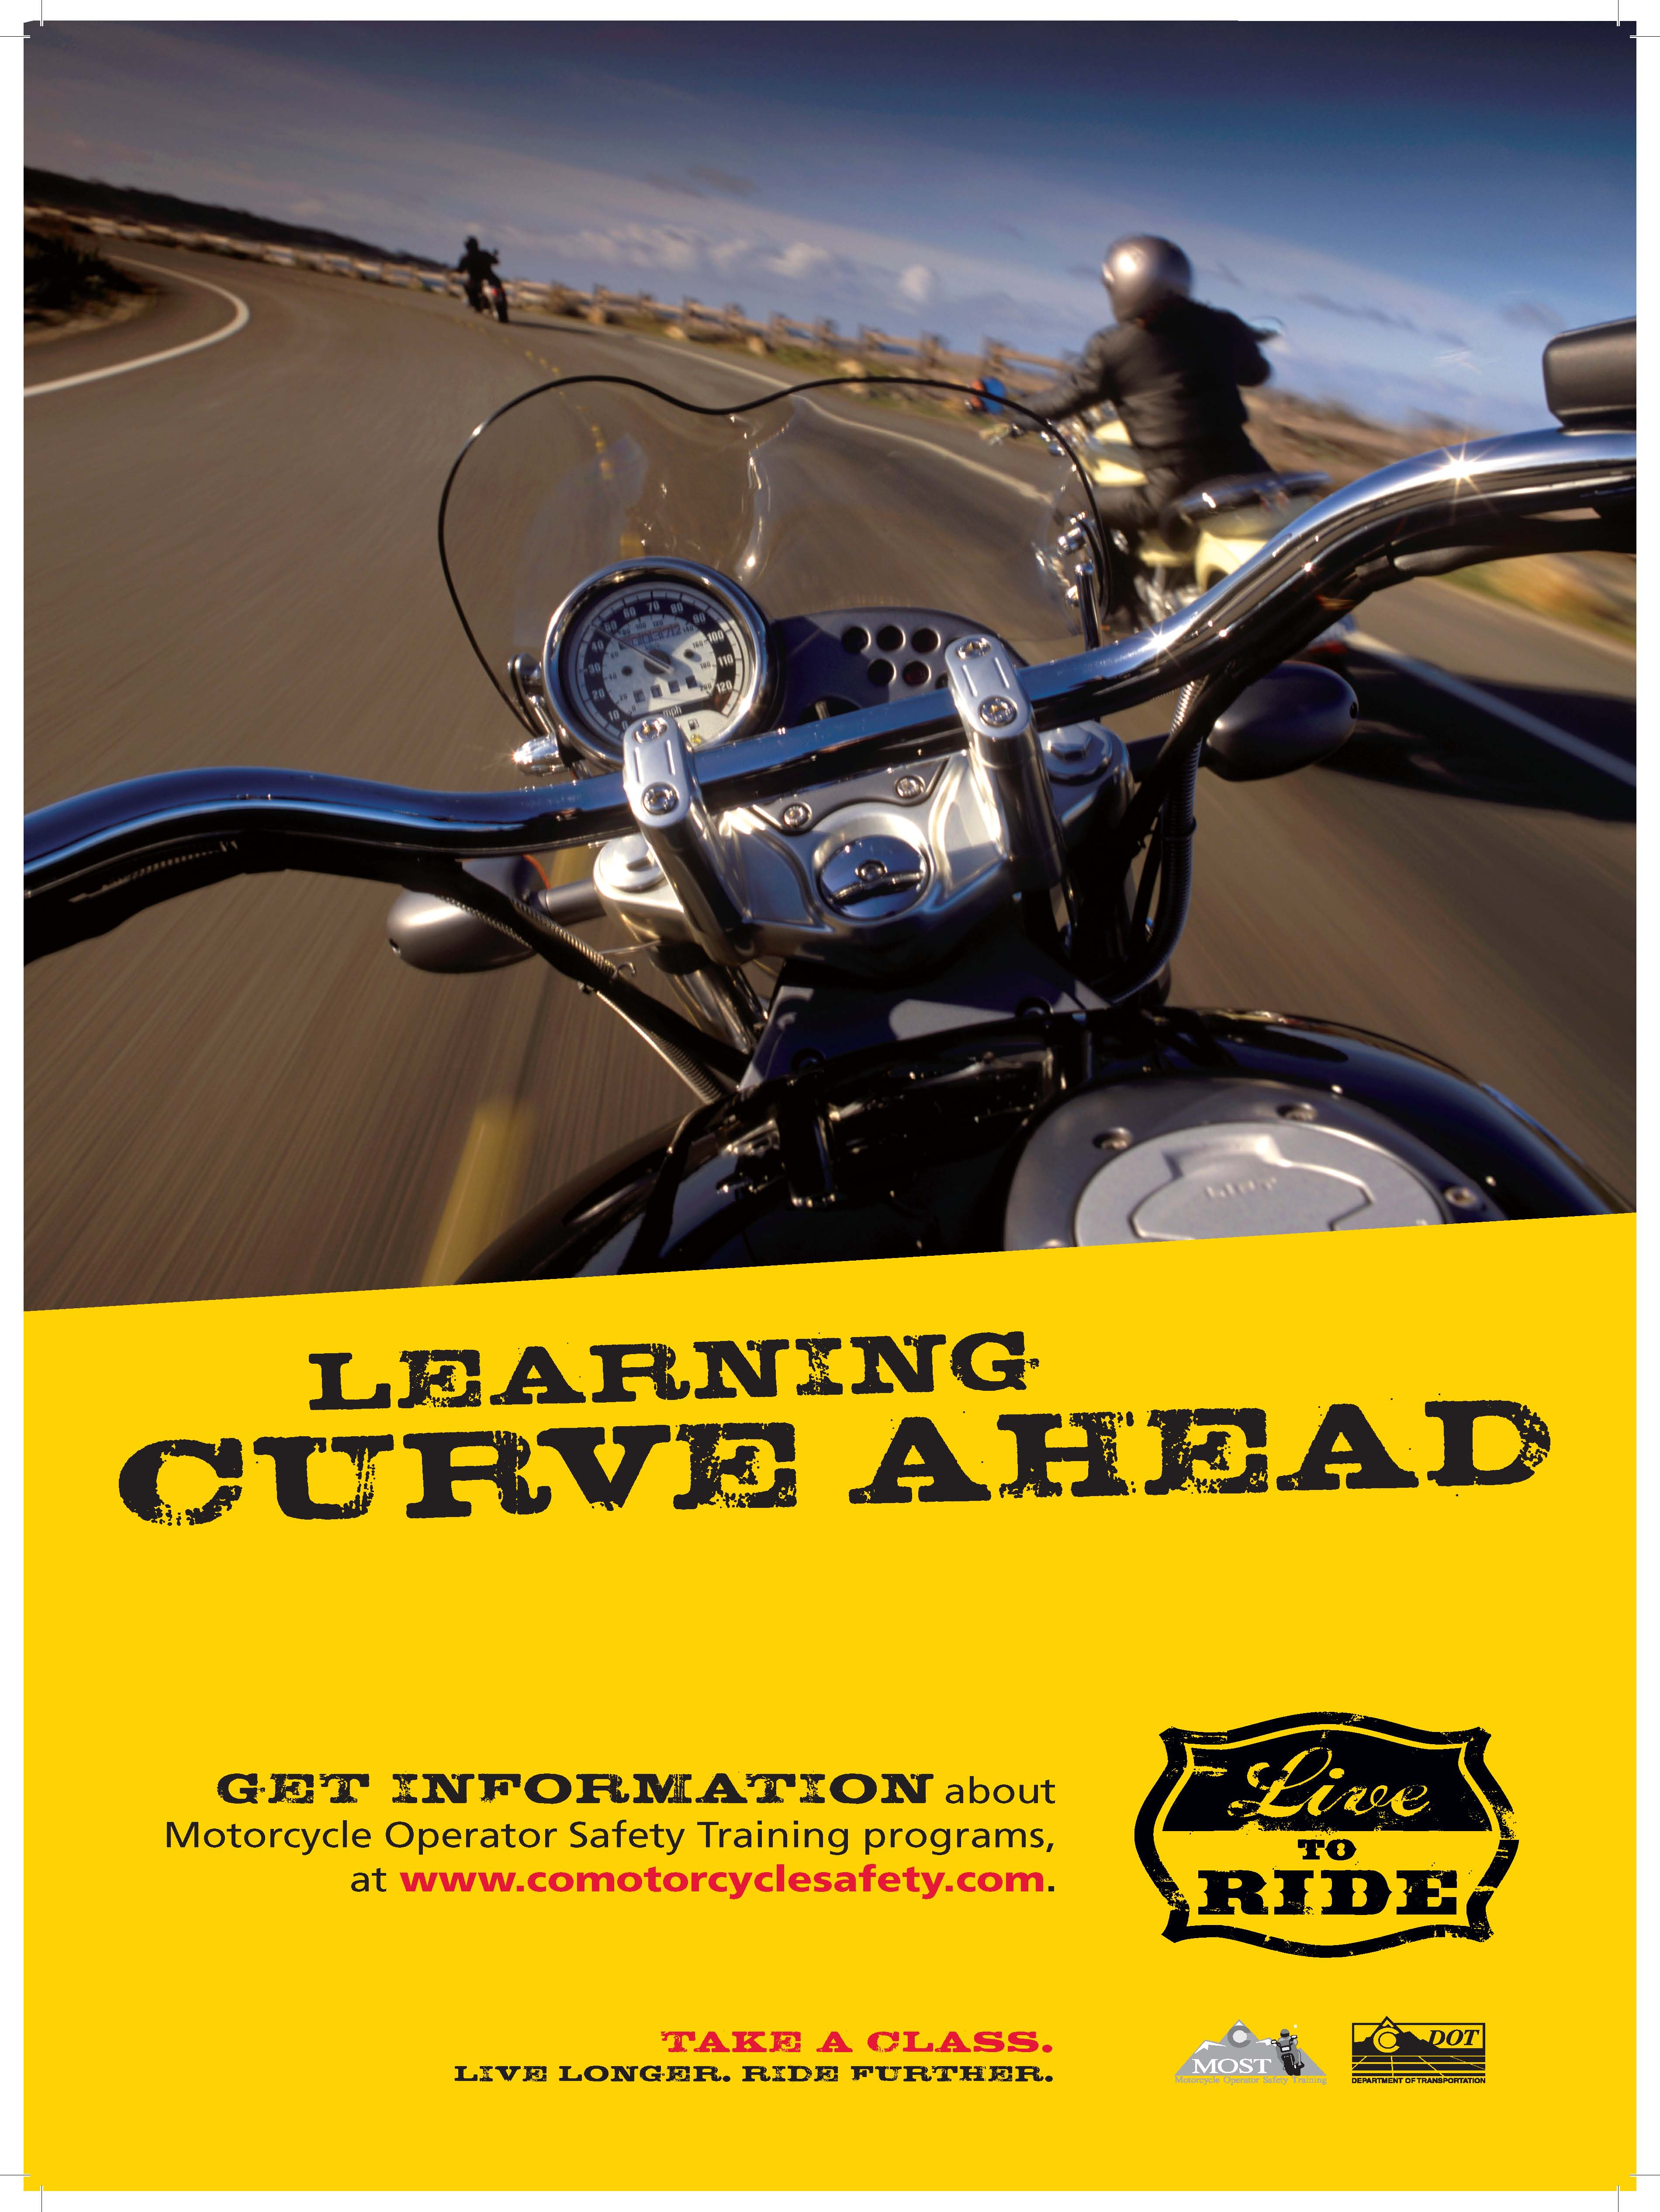 Learning Curve Poster detail image